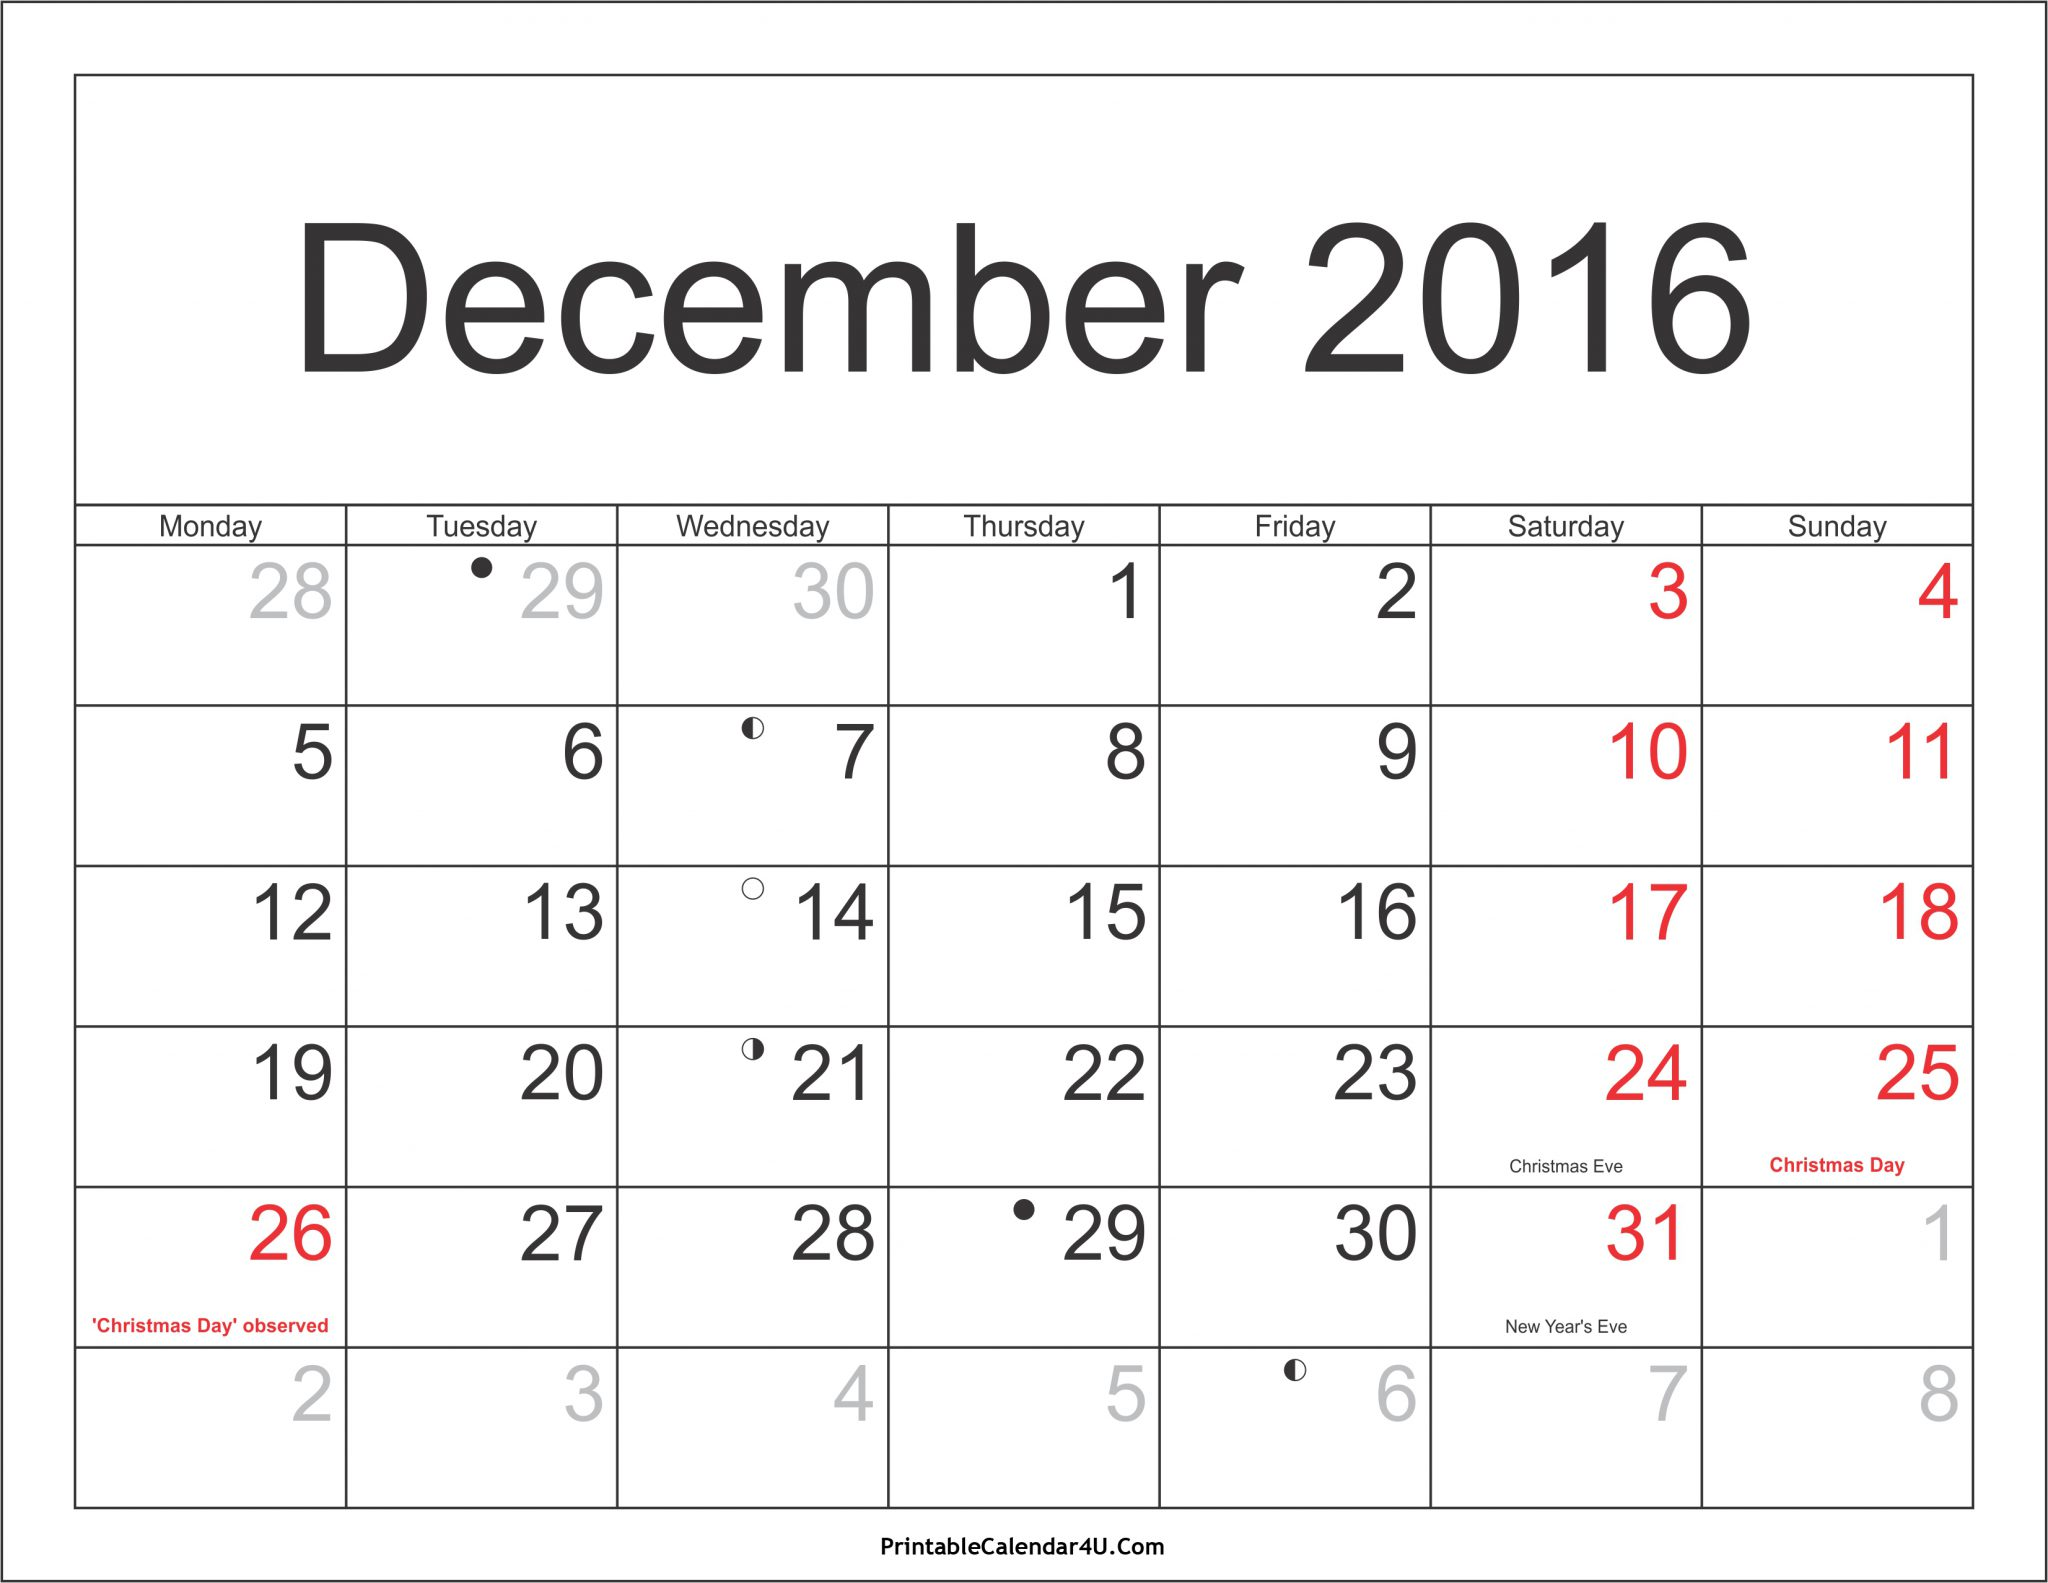 december 2016 calendar with holidays